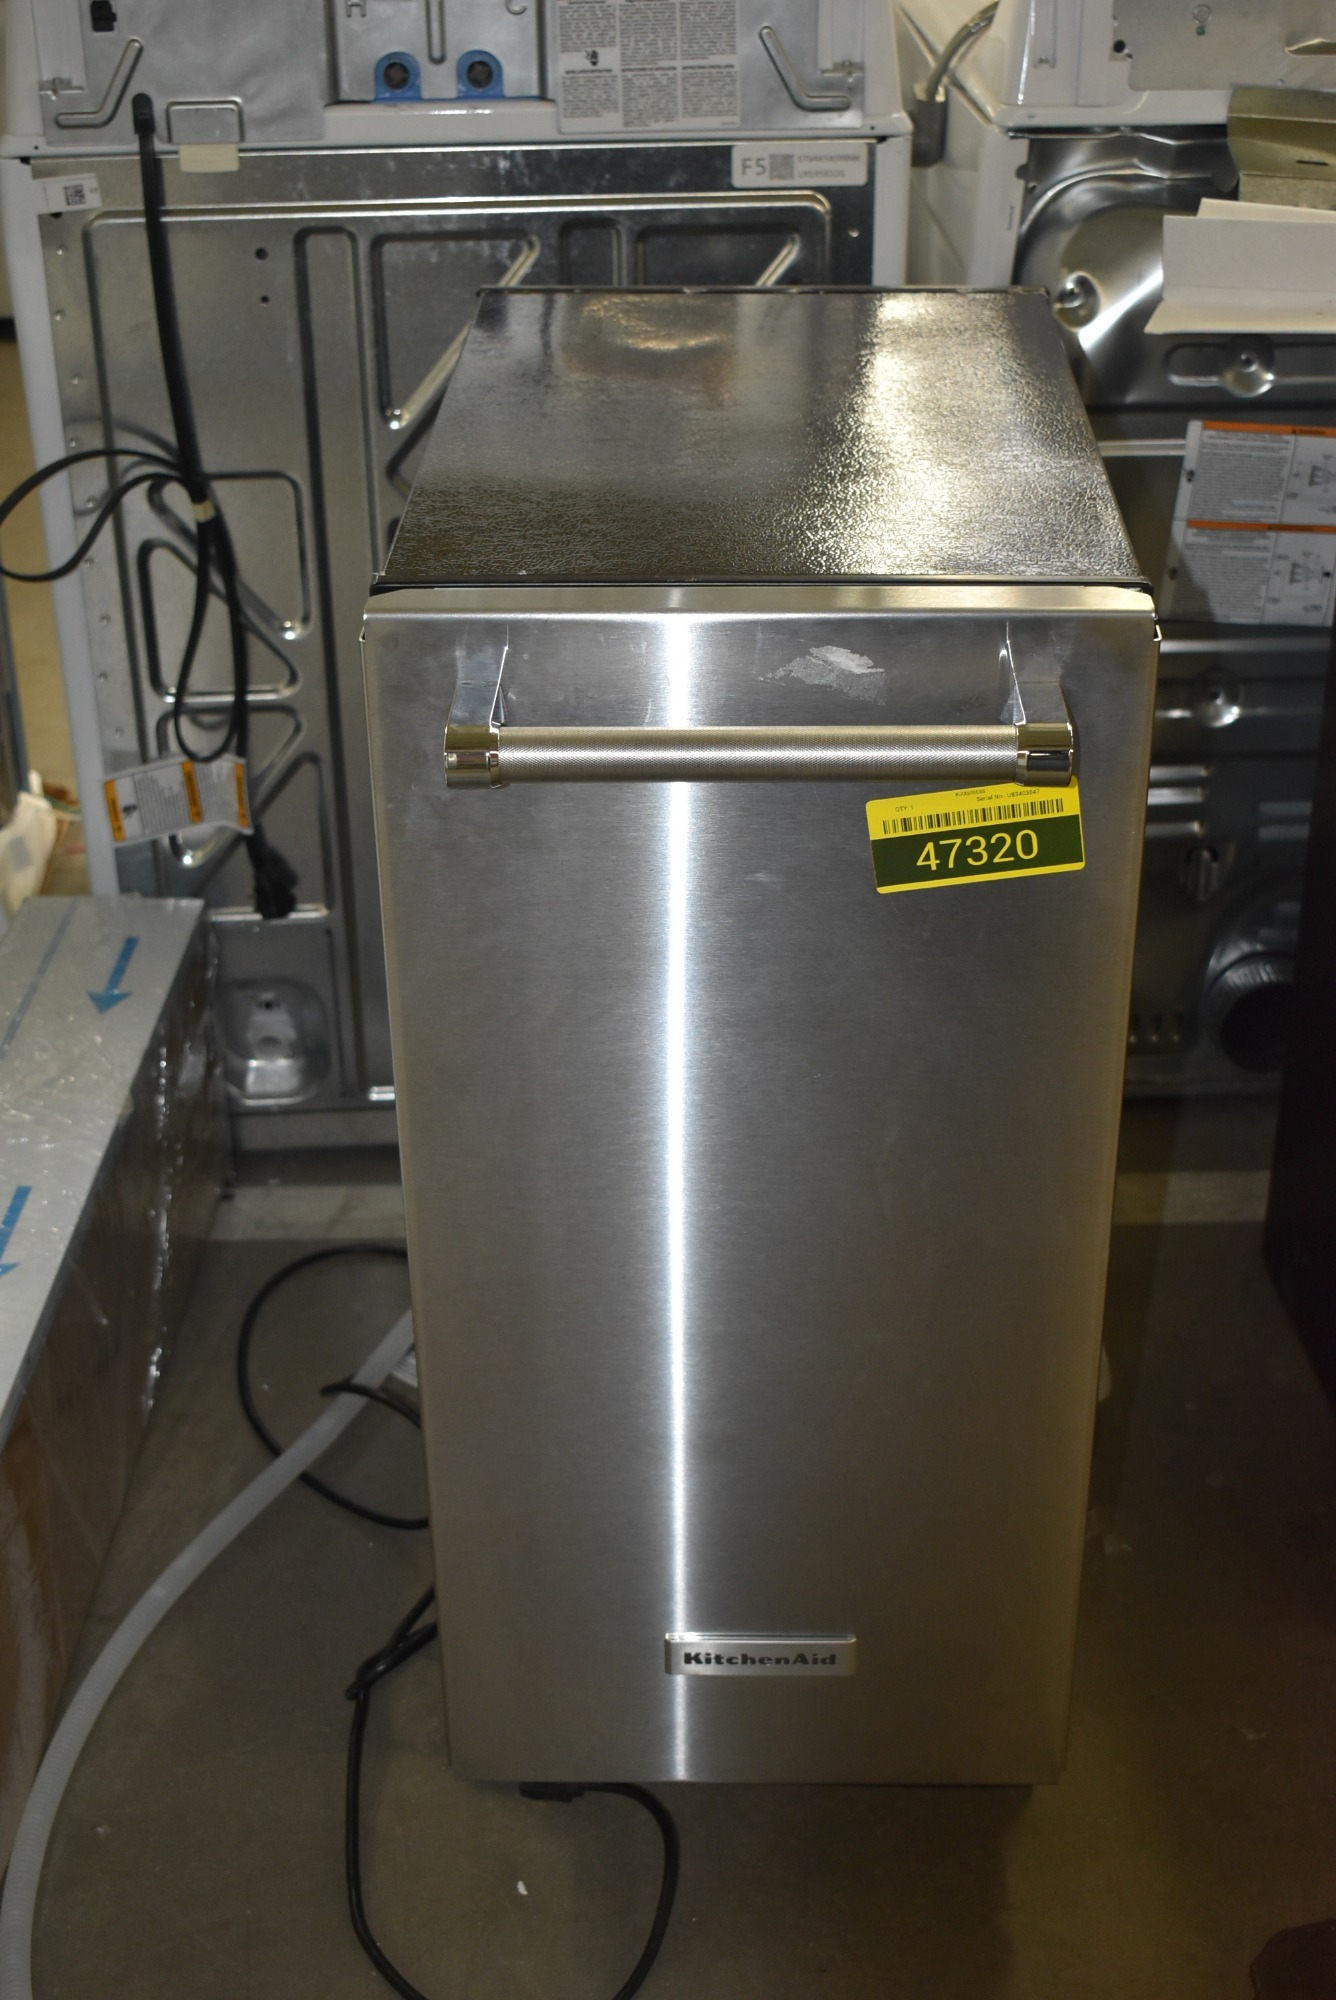 KitchenAid KUIX505ESS 15